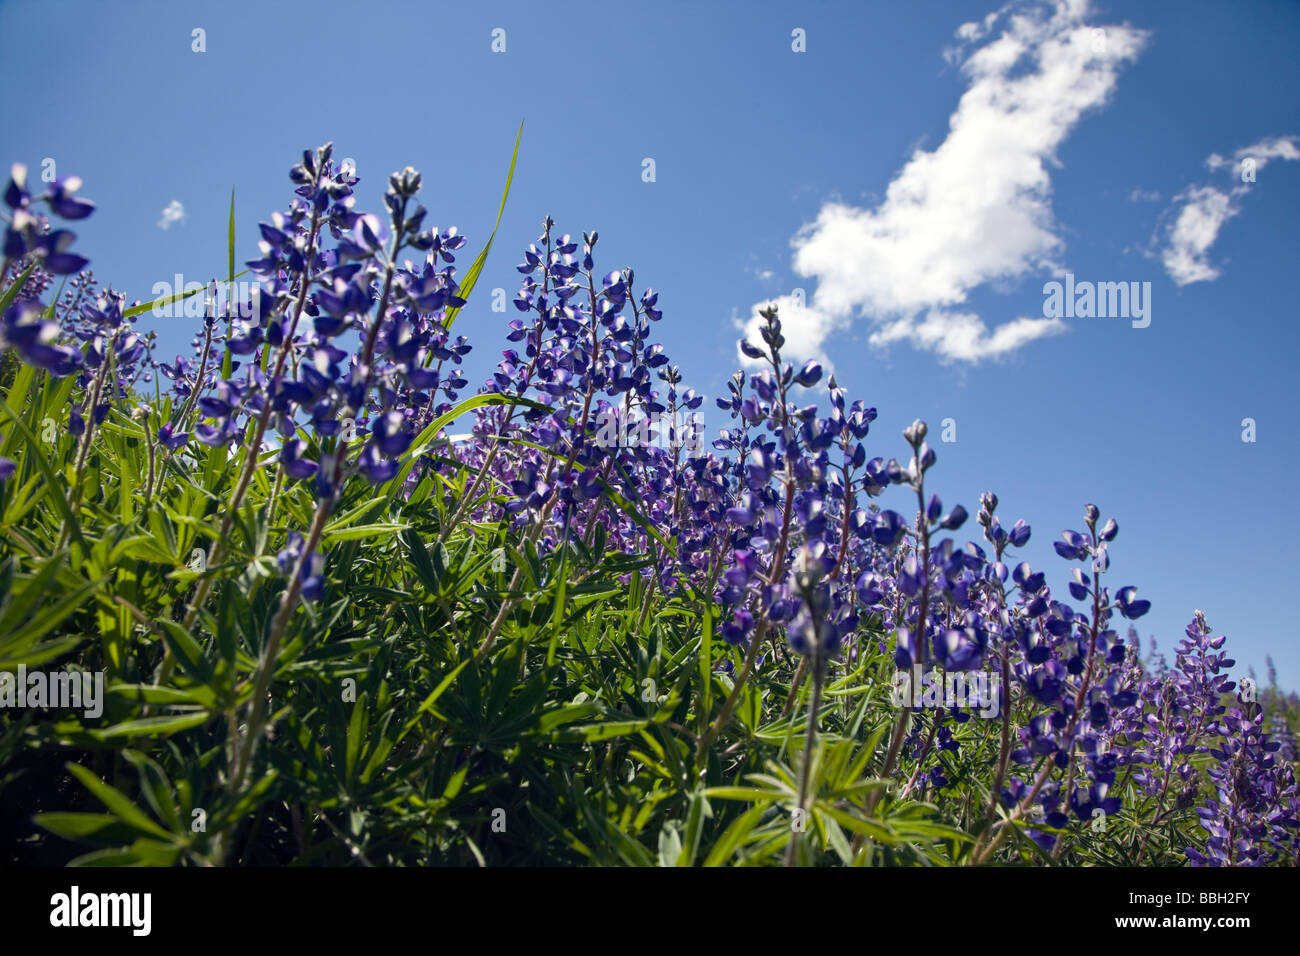 Wild Perennial Lupin Lupinus perennis at Rock Point Black Canyon of the Gunnison National Park Colorado USA - Stock Image